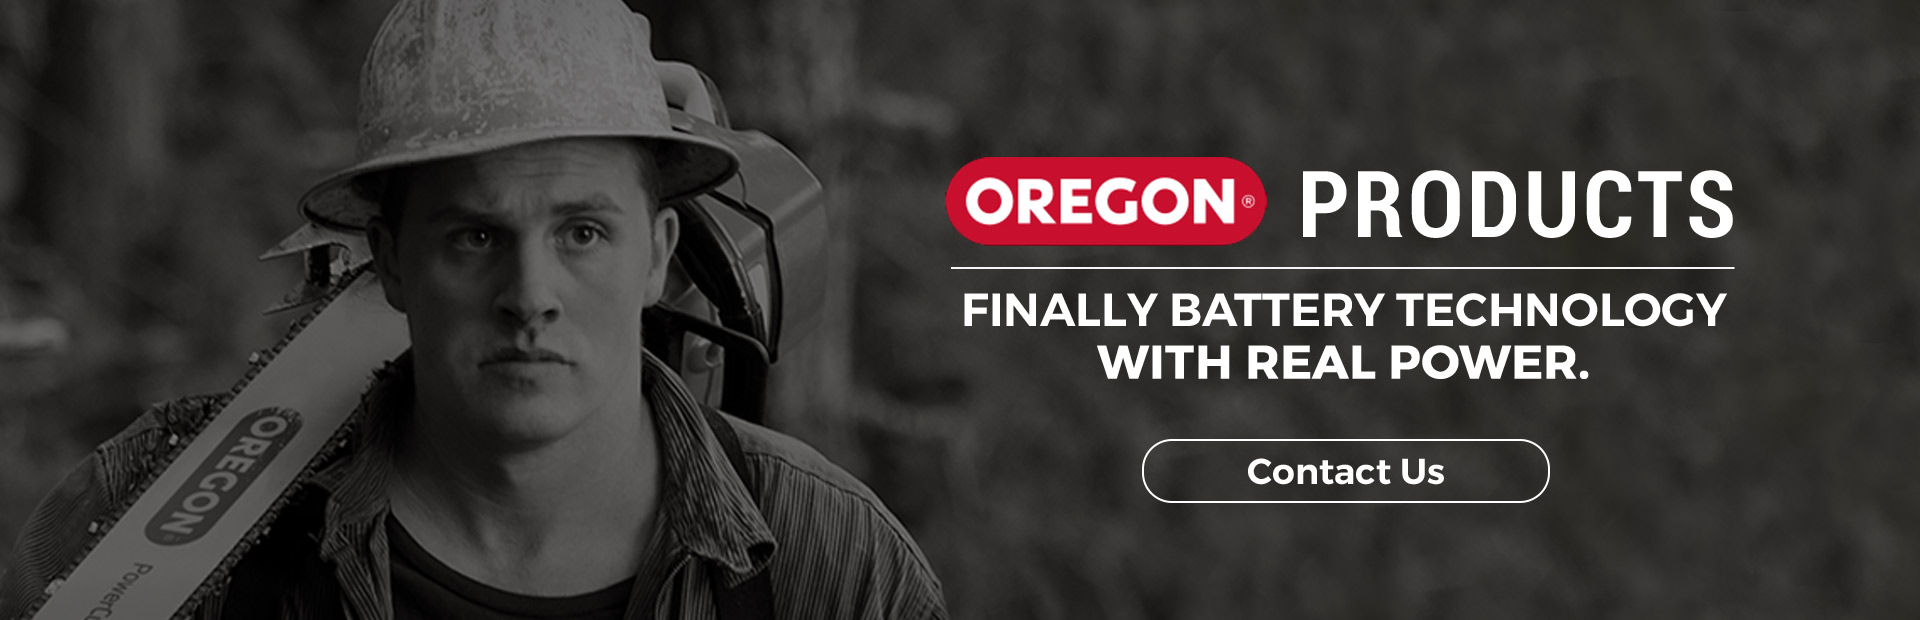 Oregon products. Finally battery technology with real power. Click here to contact us now!